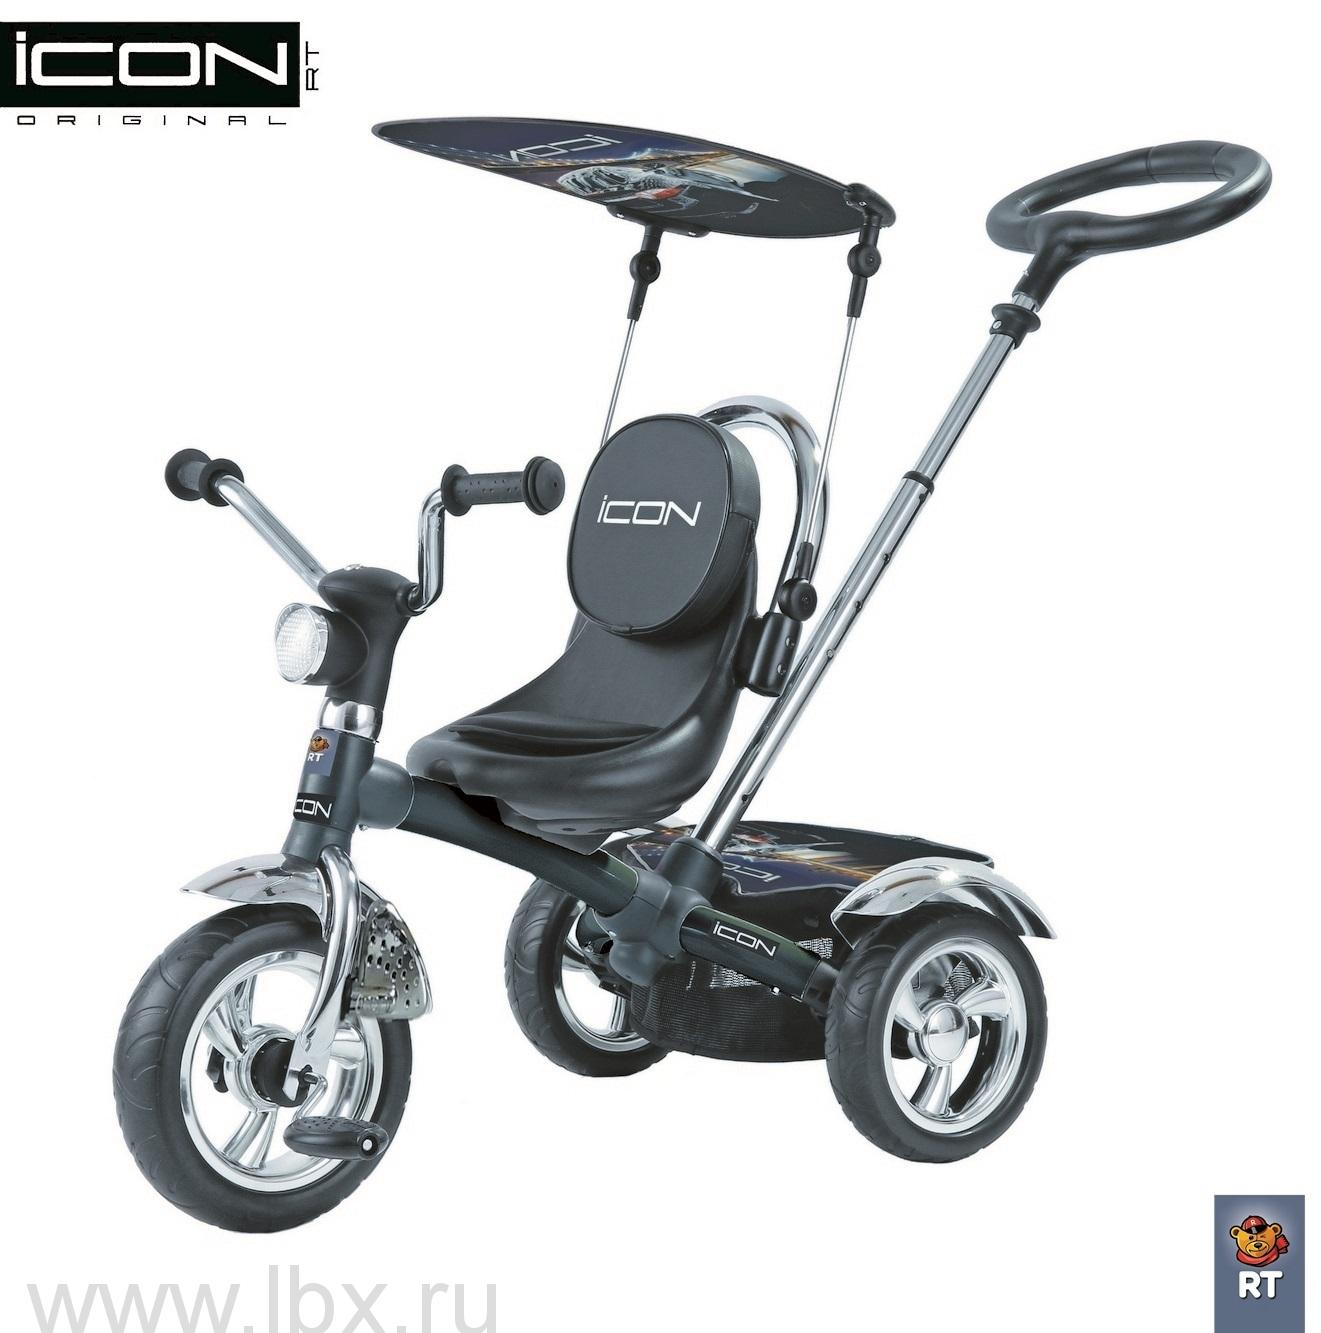 Велосипед Icon 4 Black mat Car Lexus Trike Original (Лексус Трайк)